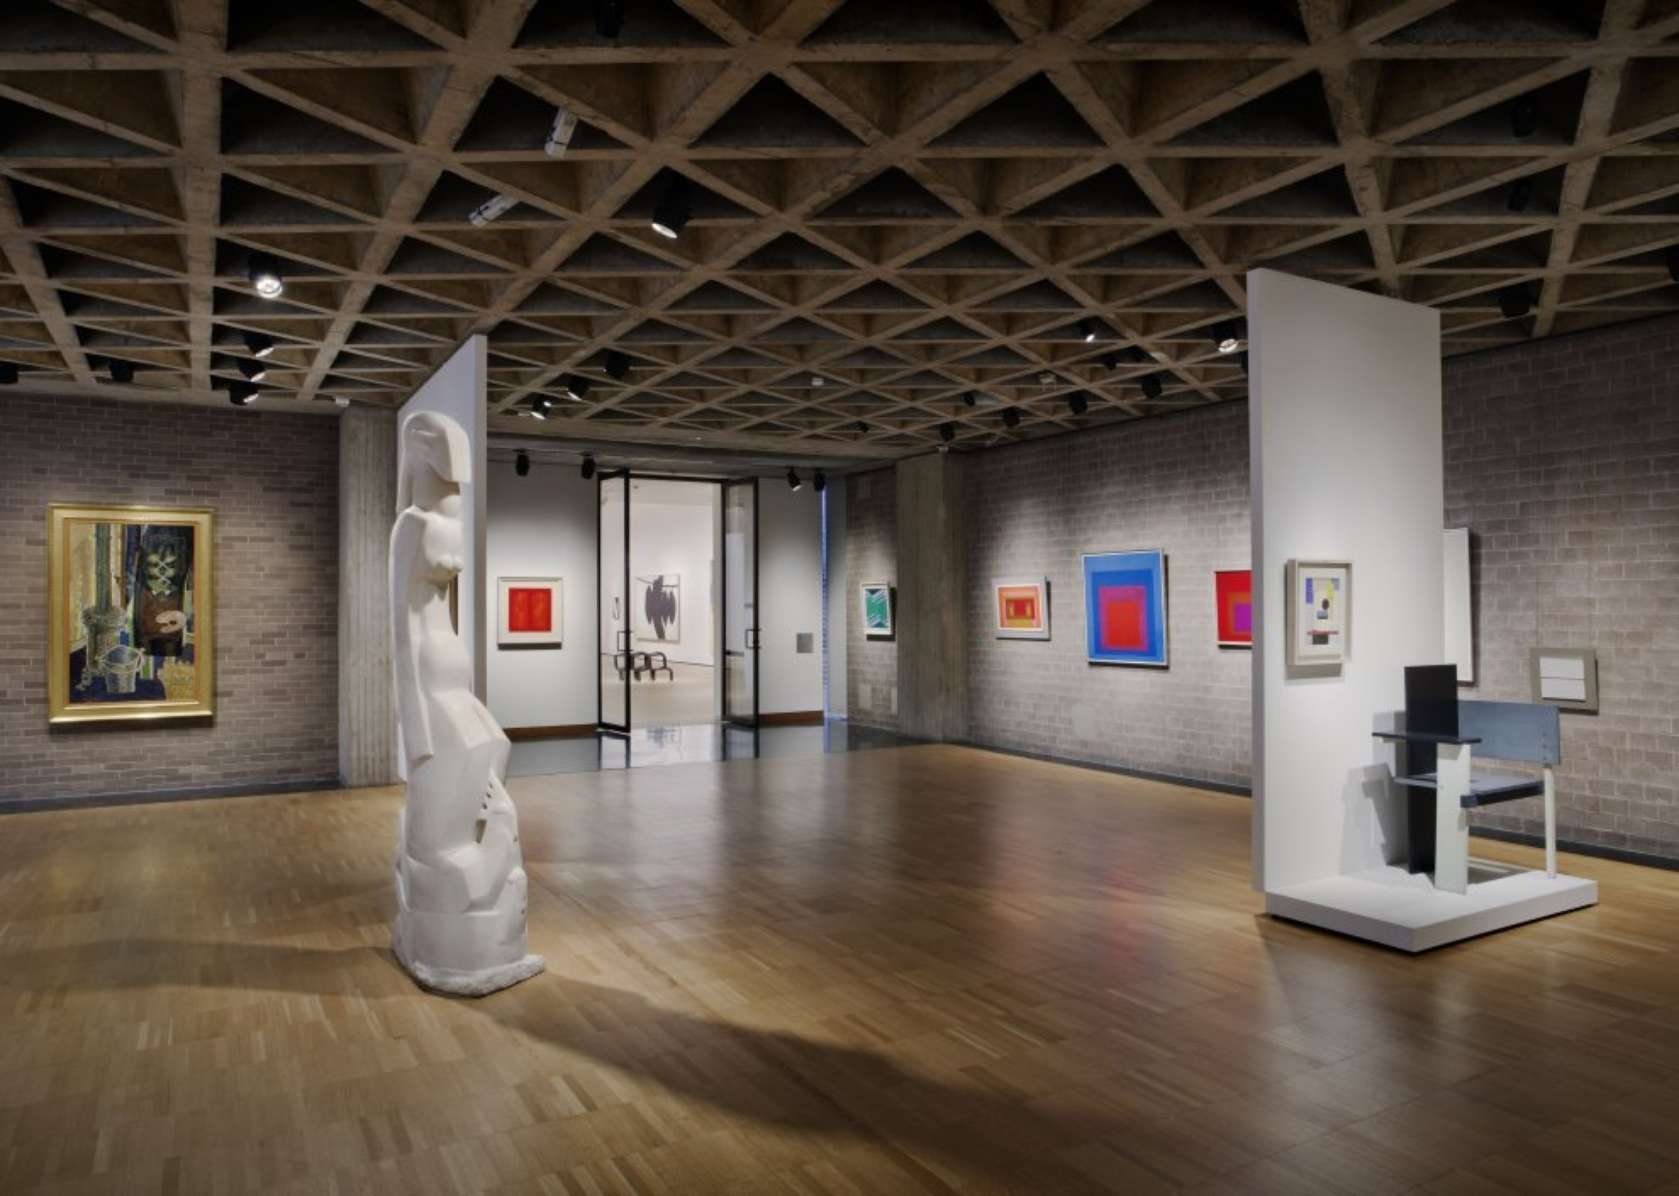 After 18 years overhaul of yale art gallery finally complete architizer - Art gallery interior design ideas ...